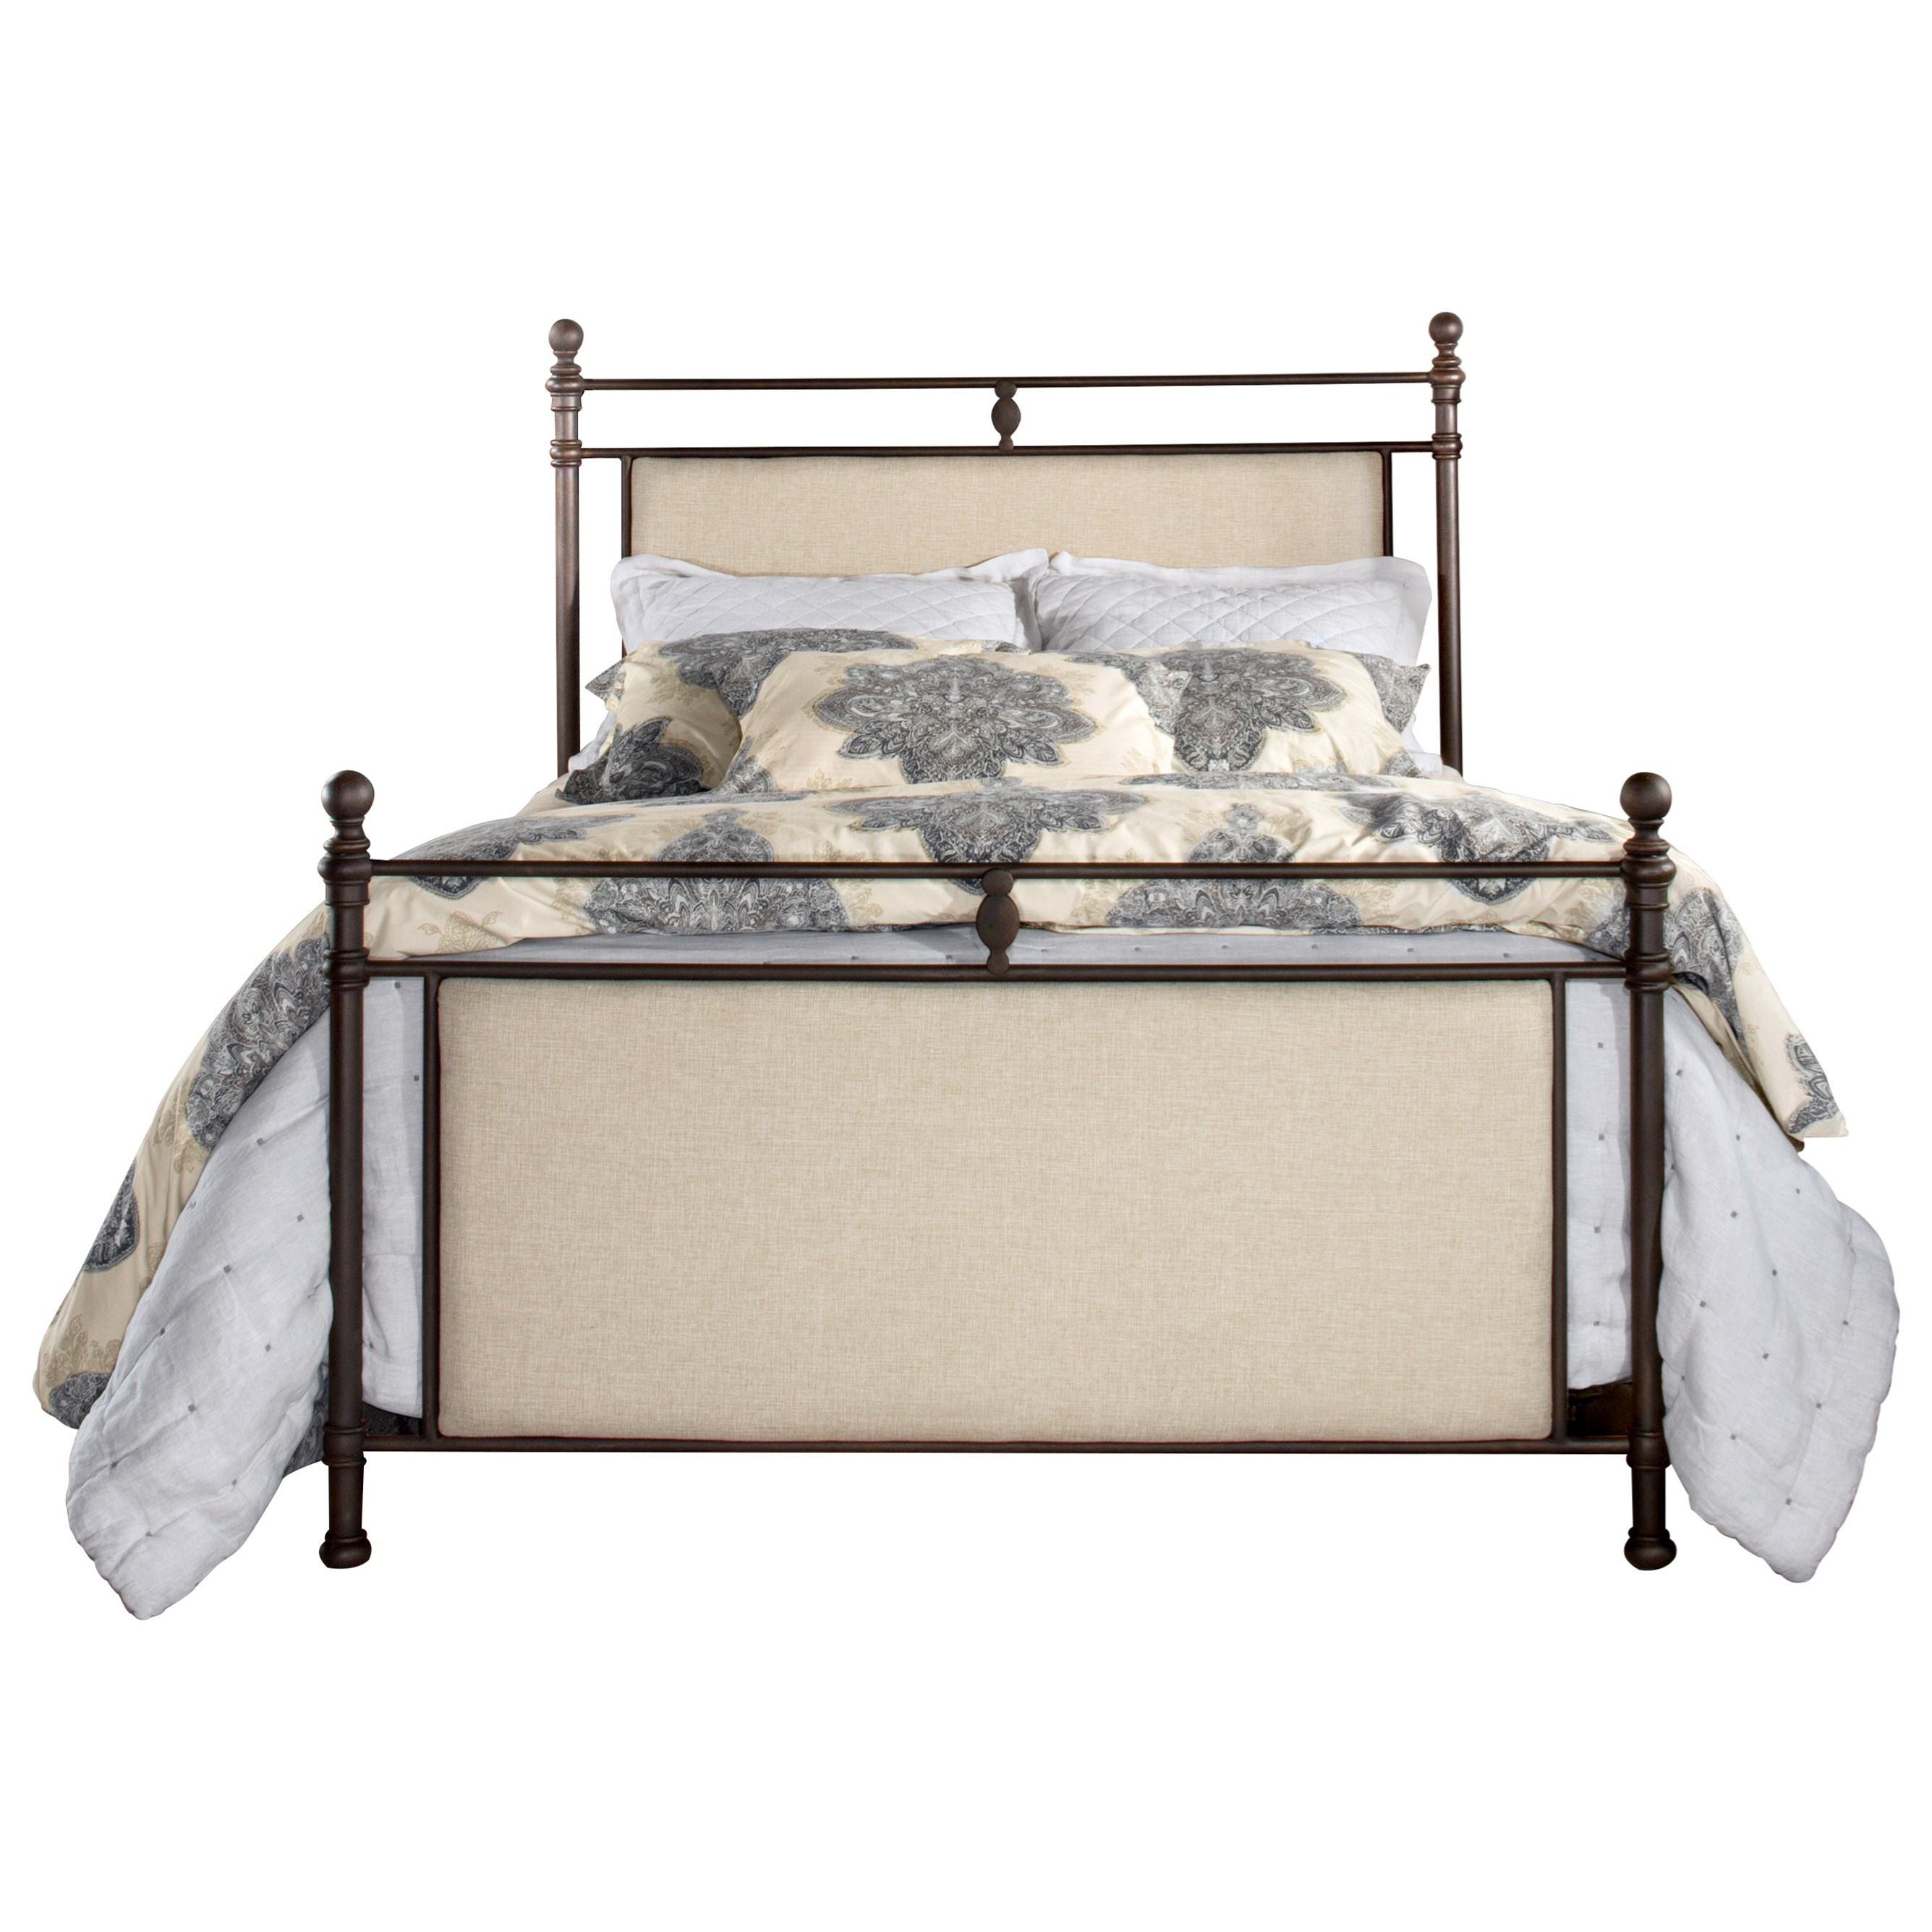 Ashley Queen Upholstered Bed by Hillsdale at Carolina Direct